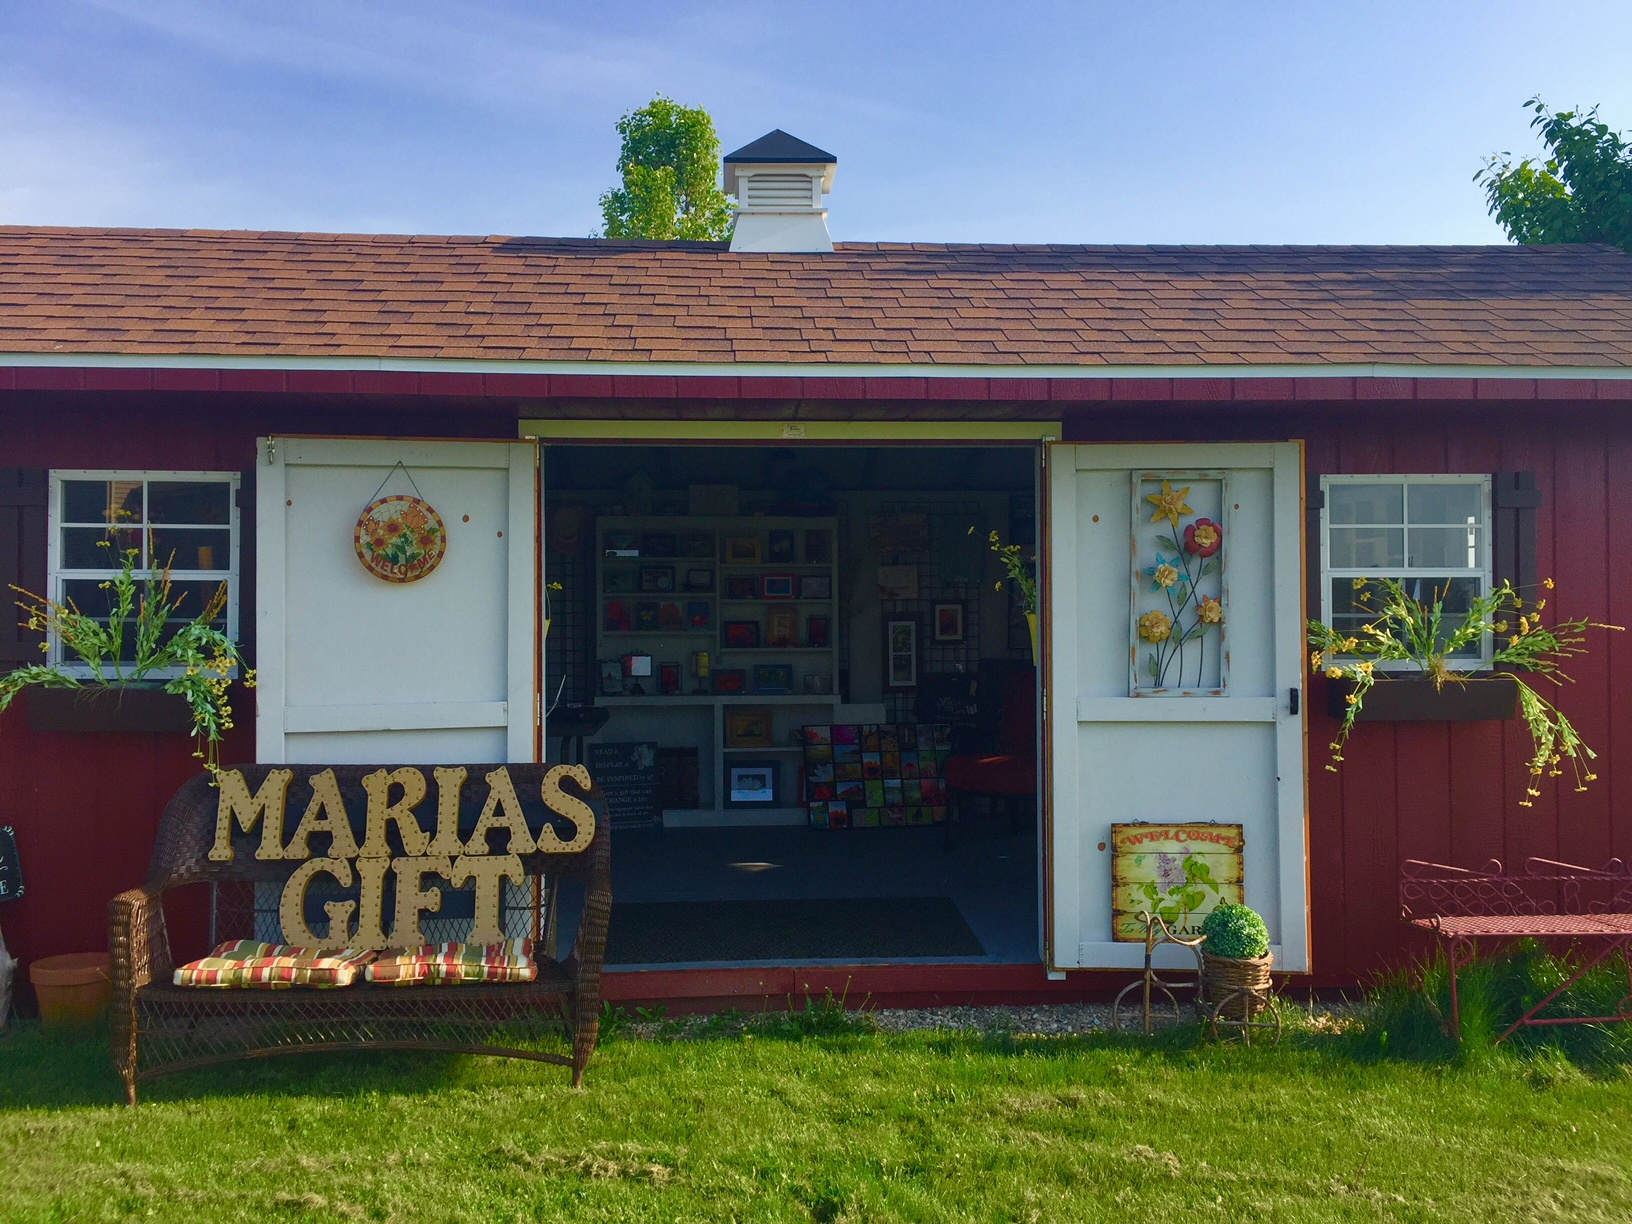 Maria's Gift 'A gift shop with a purpose.'